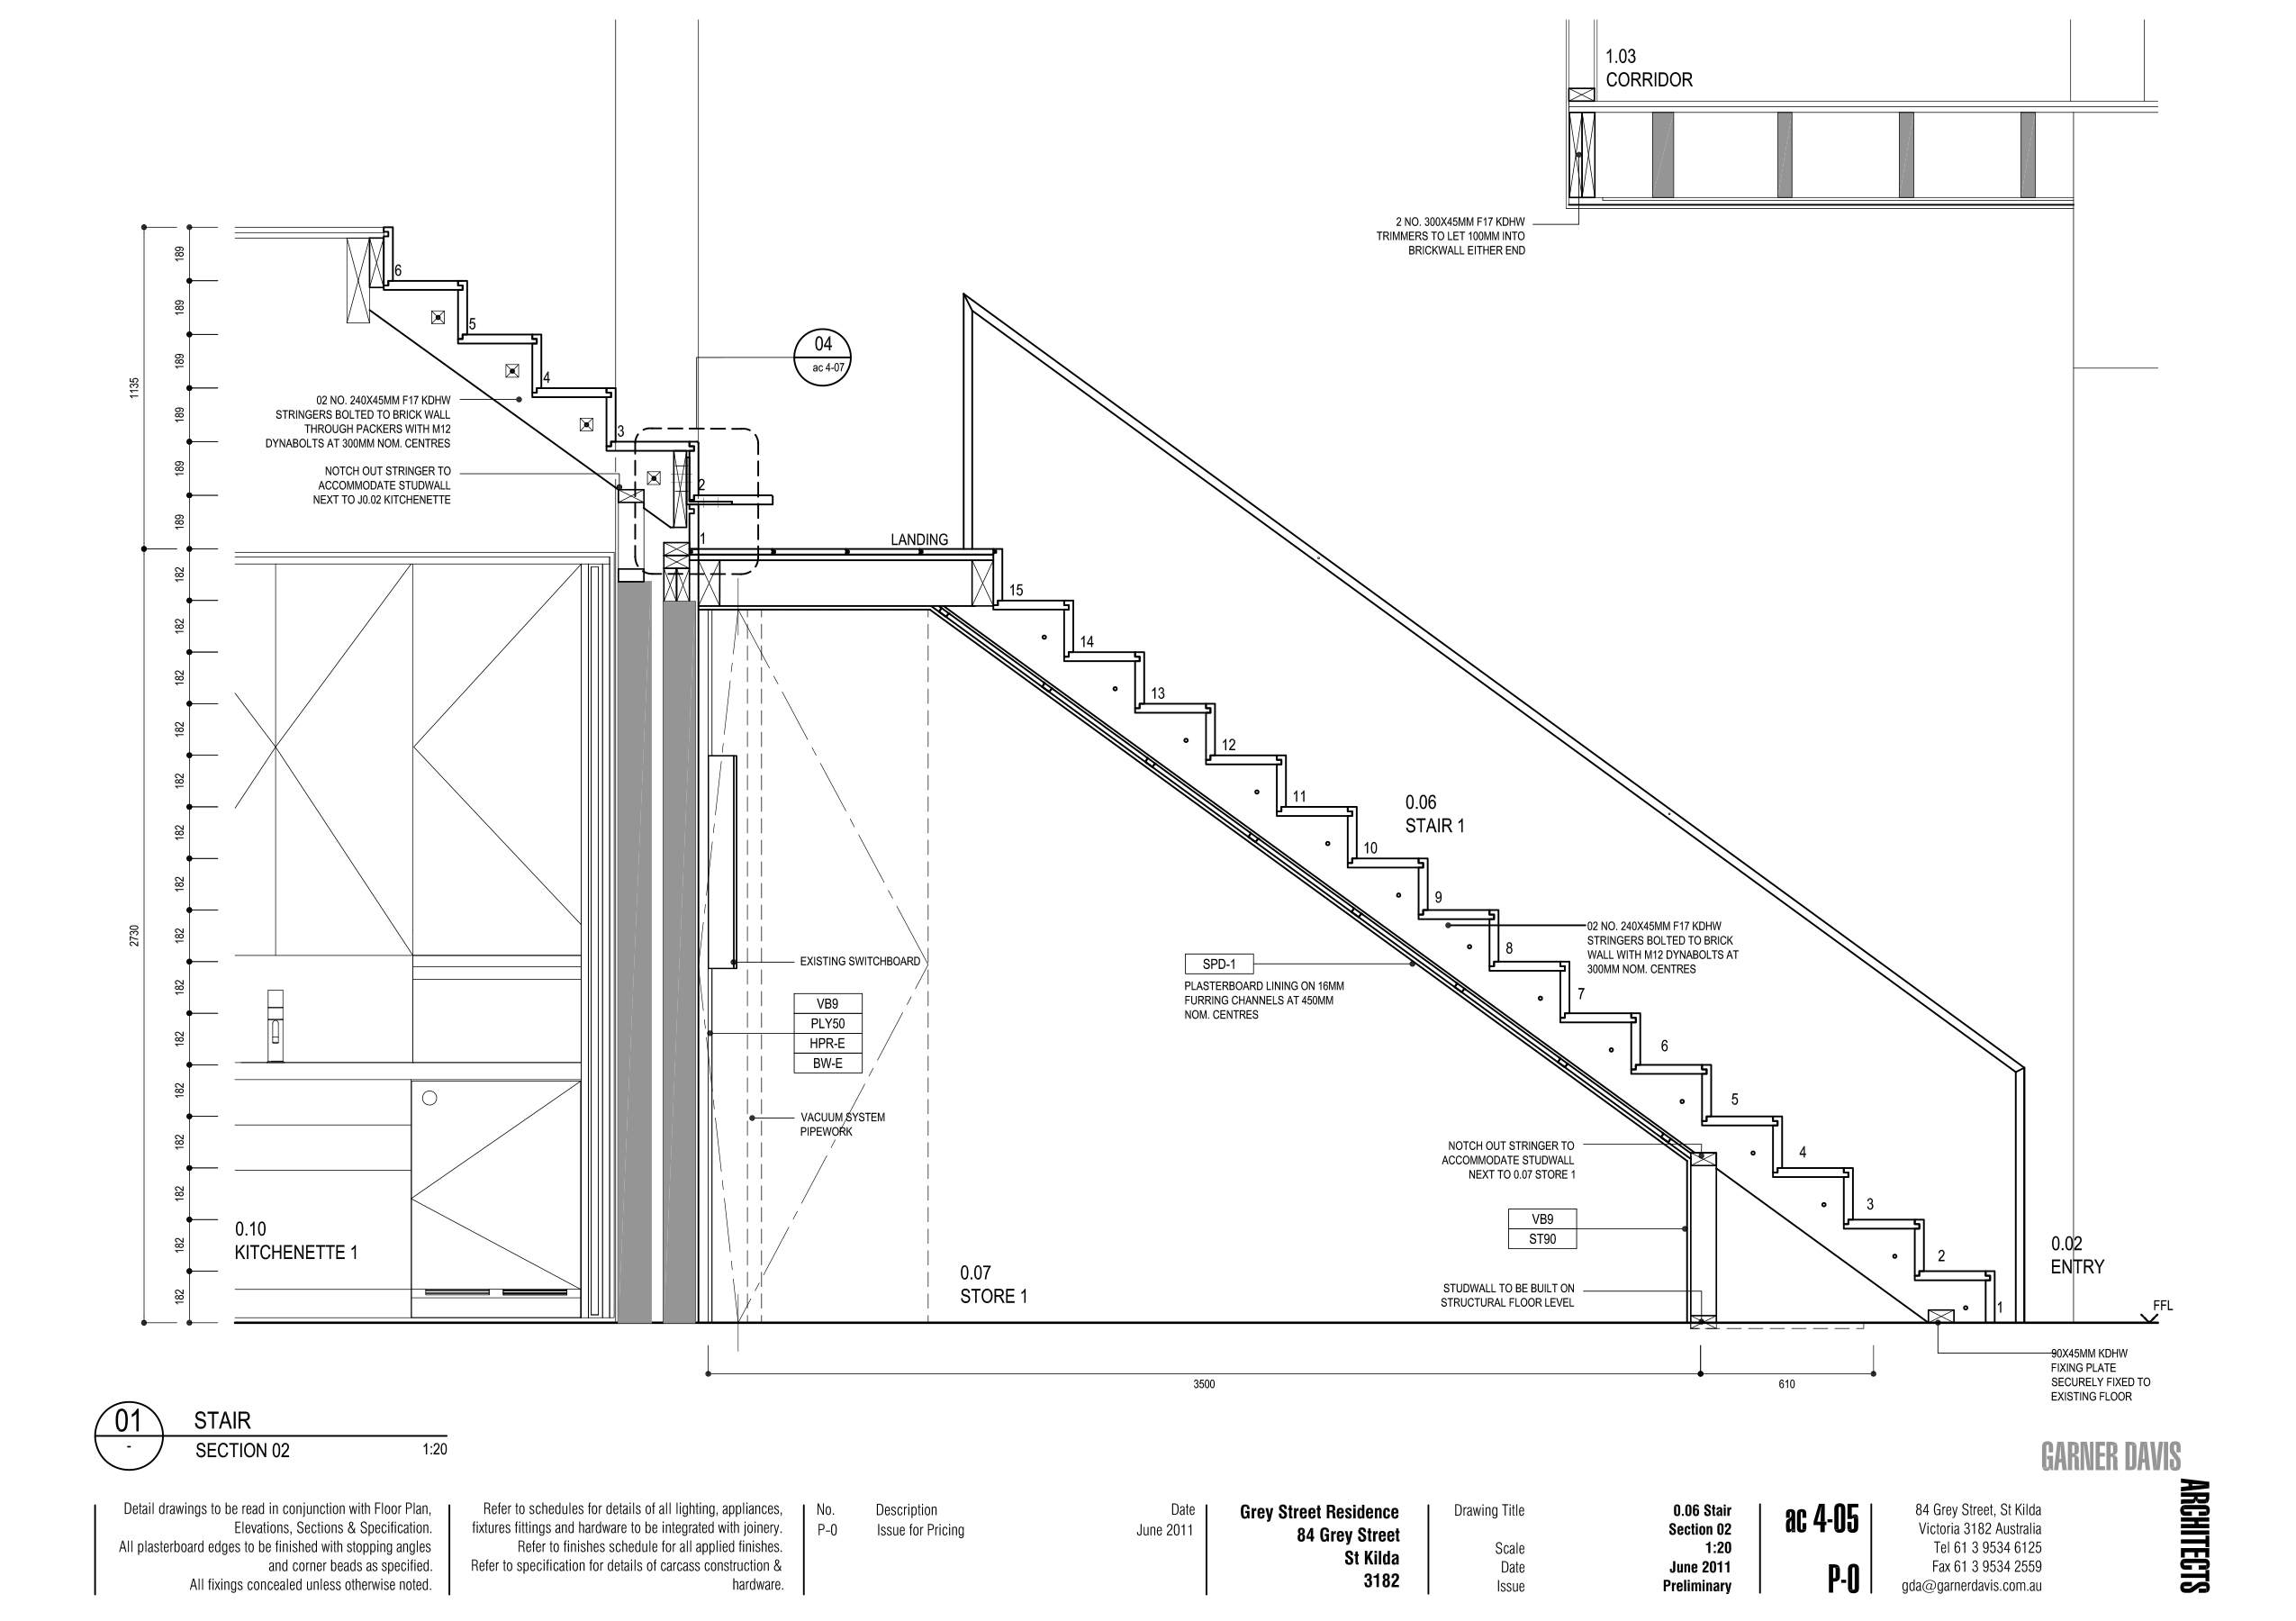 House renovation project plan - Residence At Grey Street Projects Additionally Checklist For Interior Design Remodel